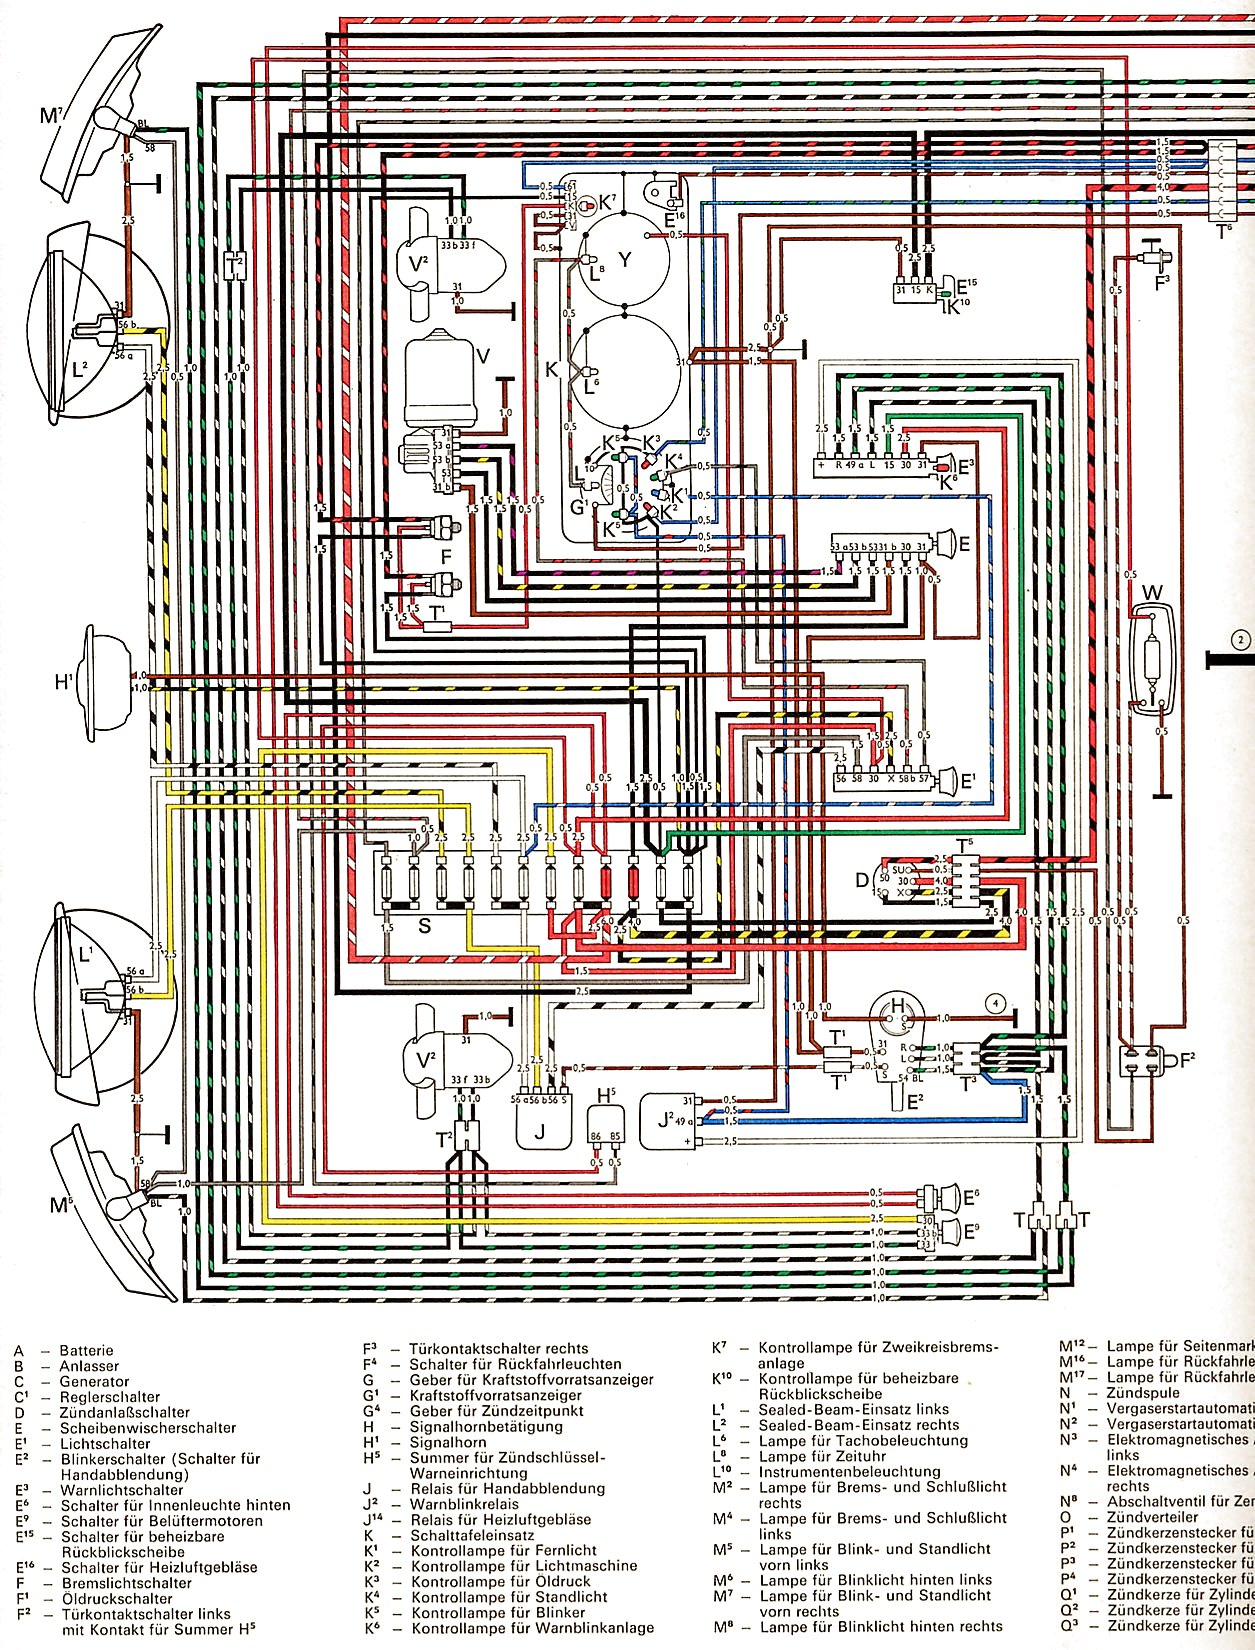 Transporter_USA_from_August_1971 1 how to read vw wiring diagrams basic motorcycle wiring diagram Wiring Harness Diagram at metegol.co